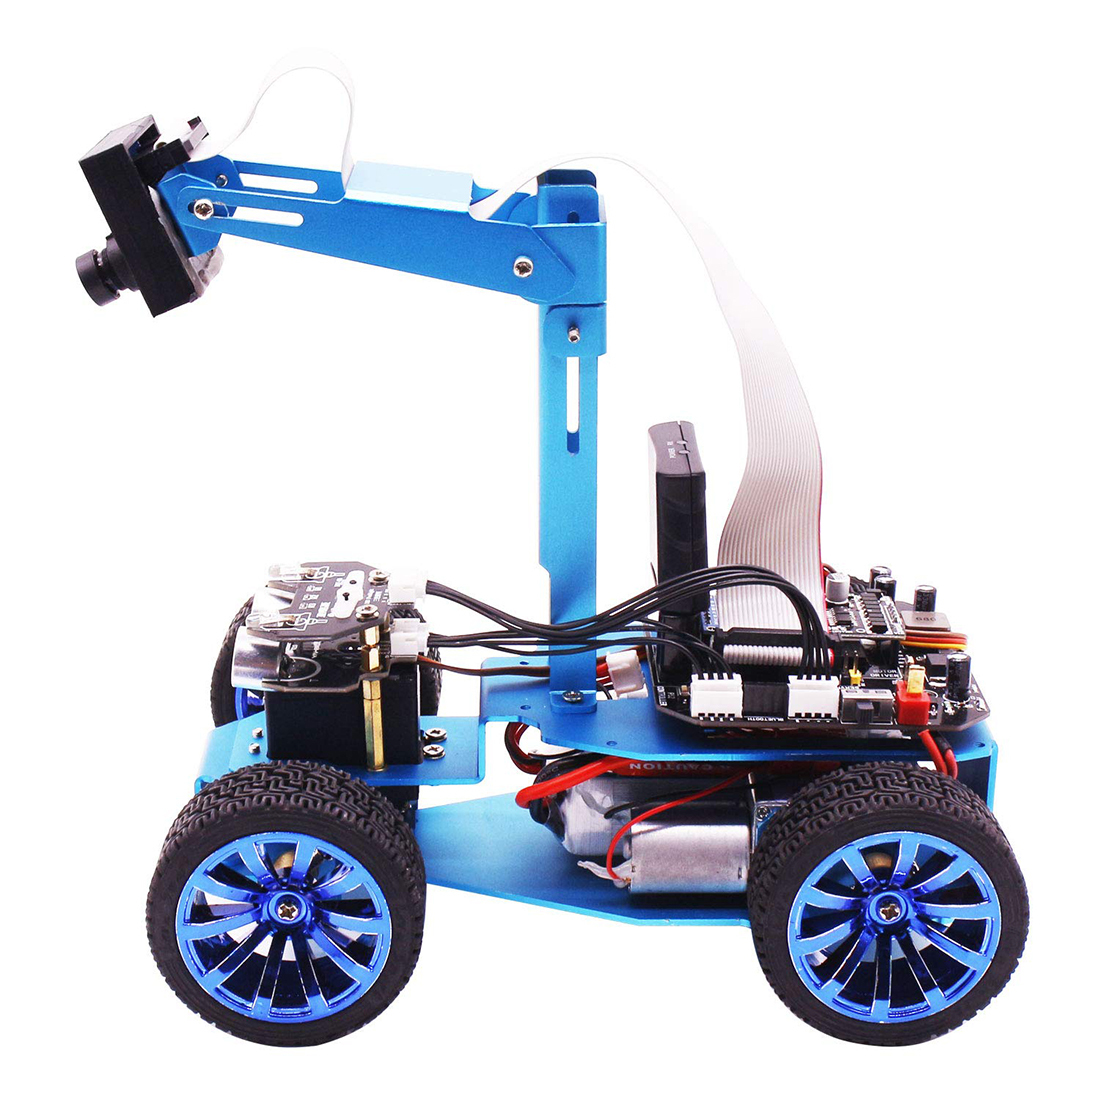 2019 High Tech Visual Robot Camera Tracking Oled Screen Independent Steering Robotics High power Motor Programmable Car Toys